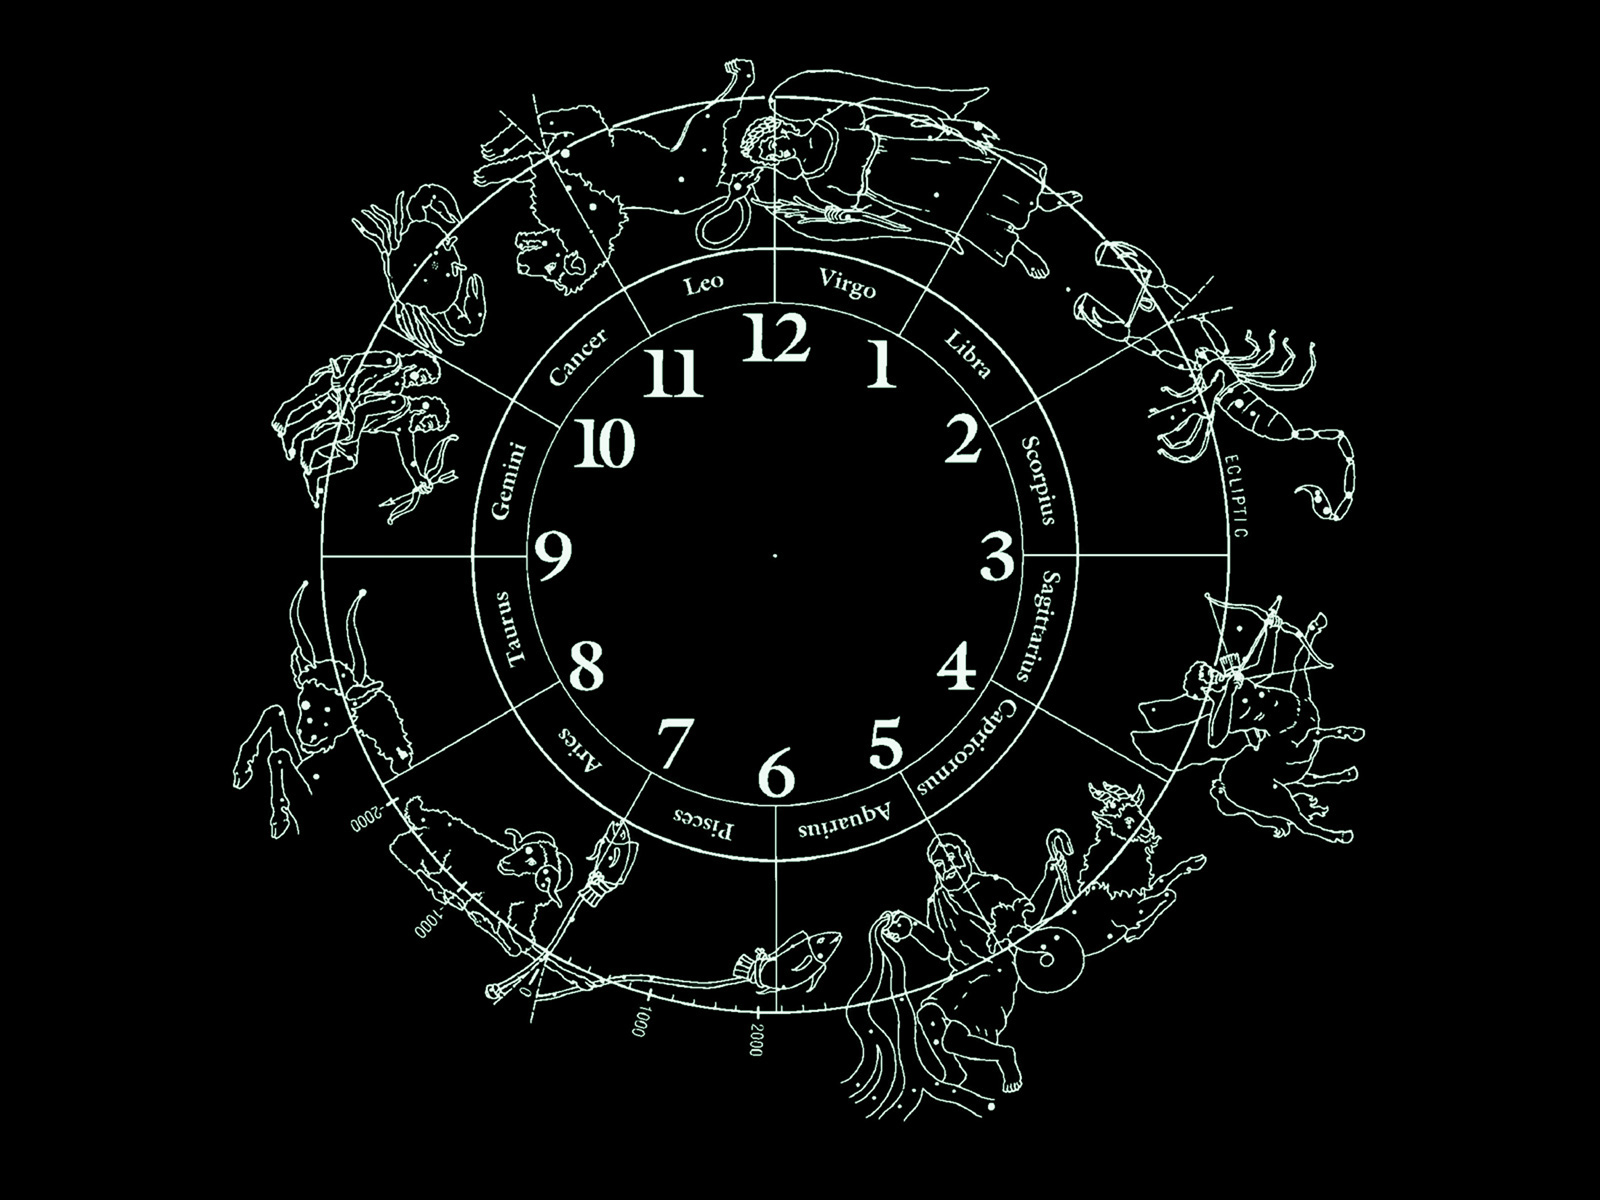 12 signs of the zodiac wallpapers and images   wallpapers pictures 1600x1200